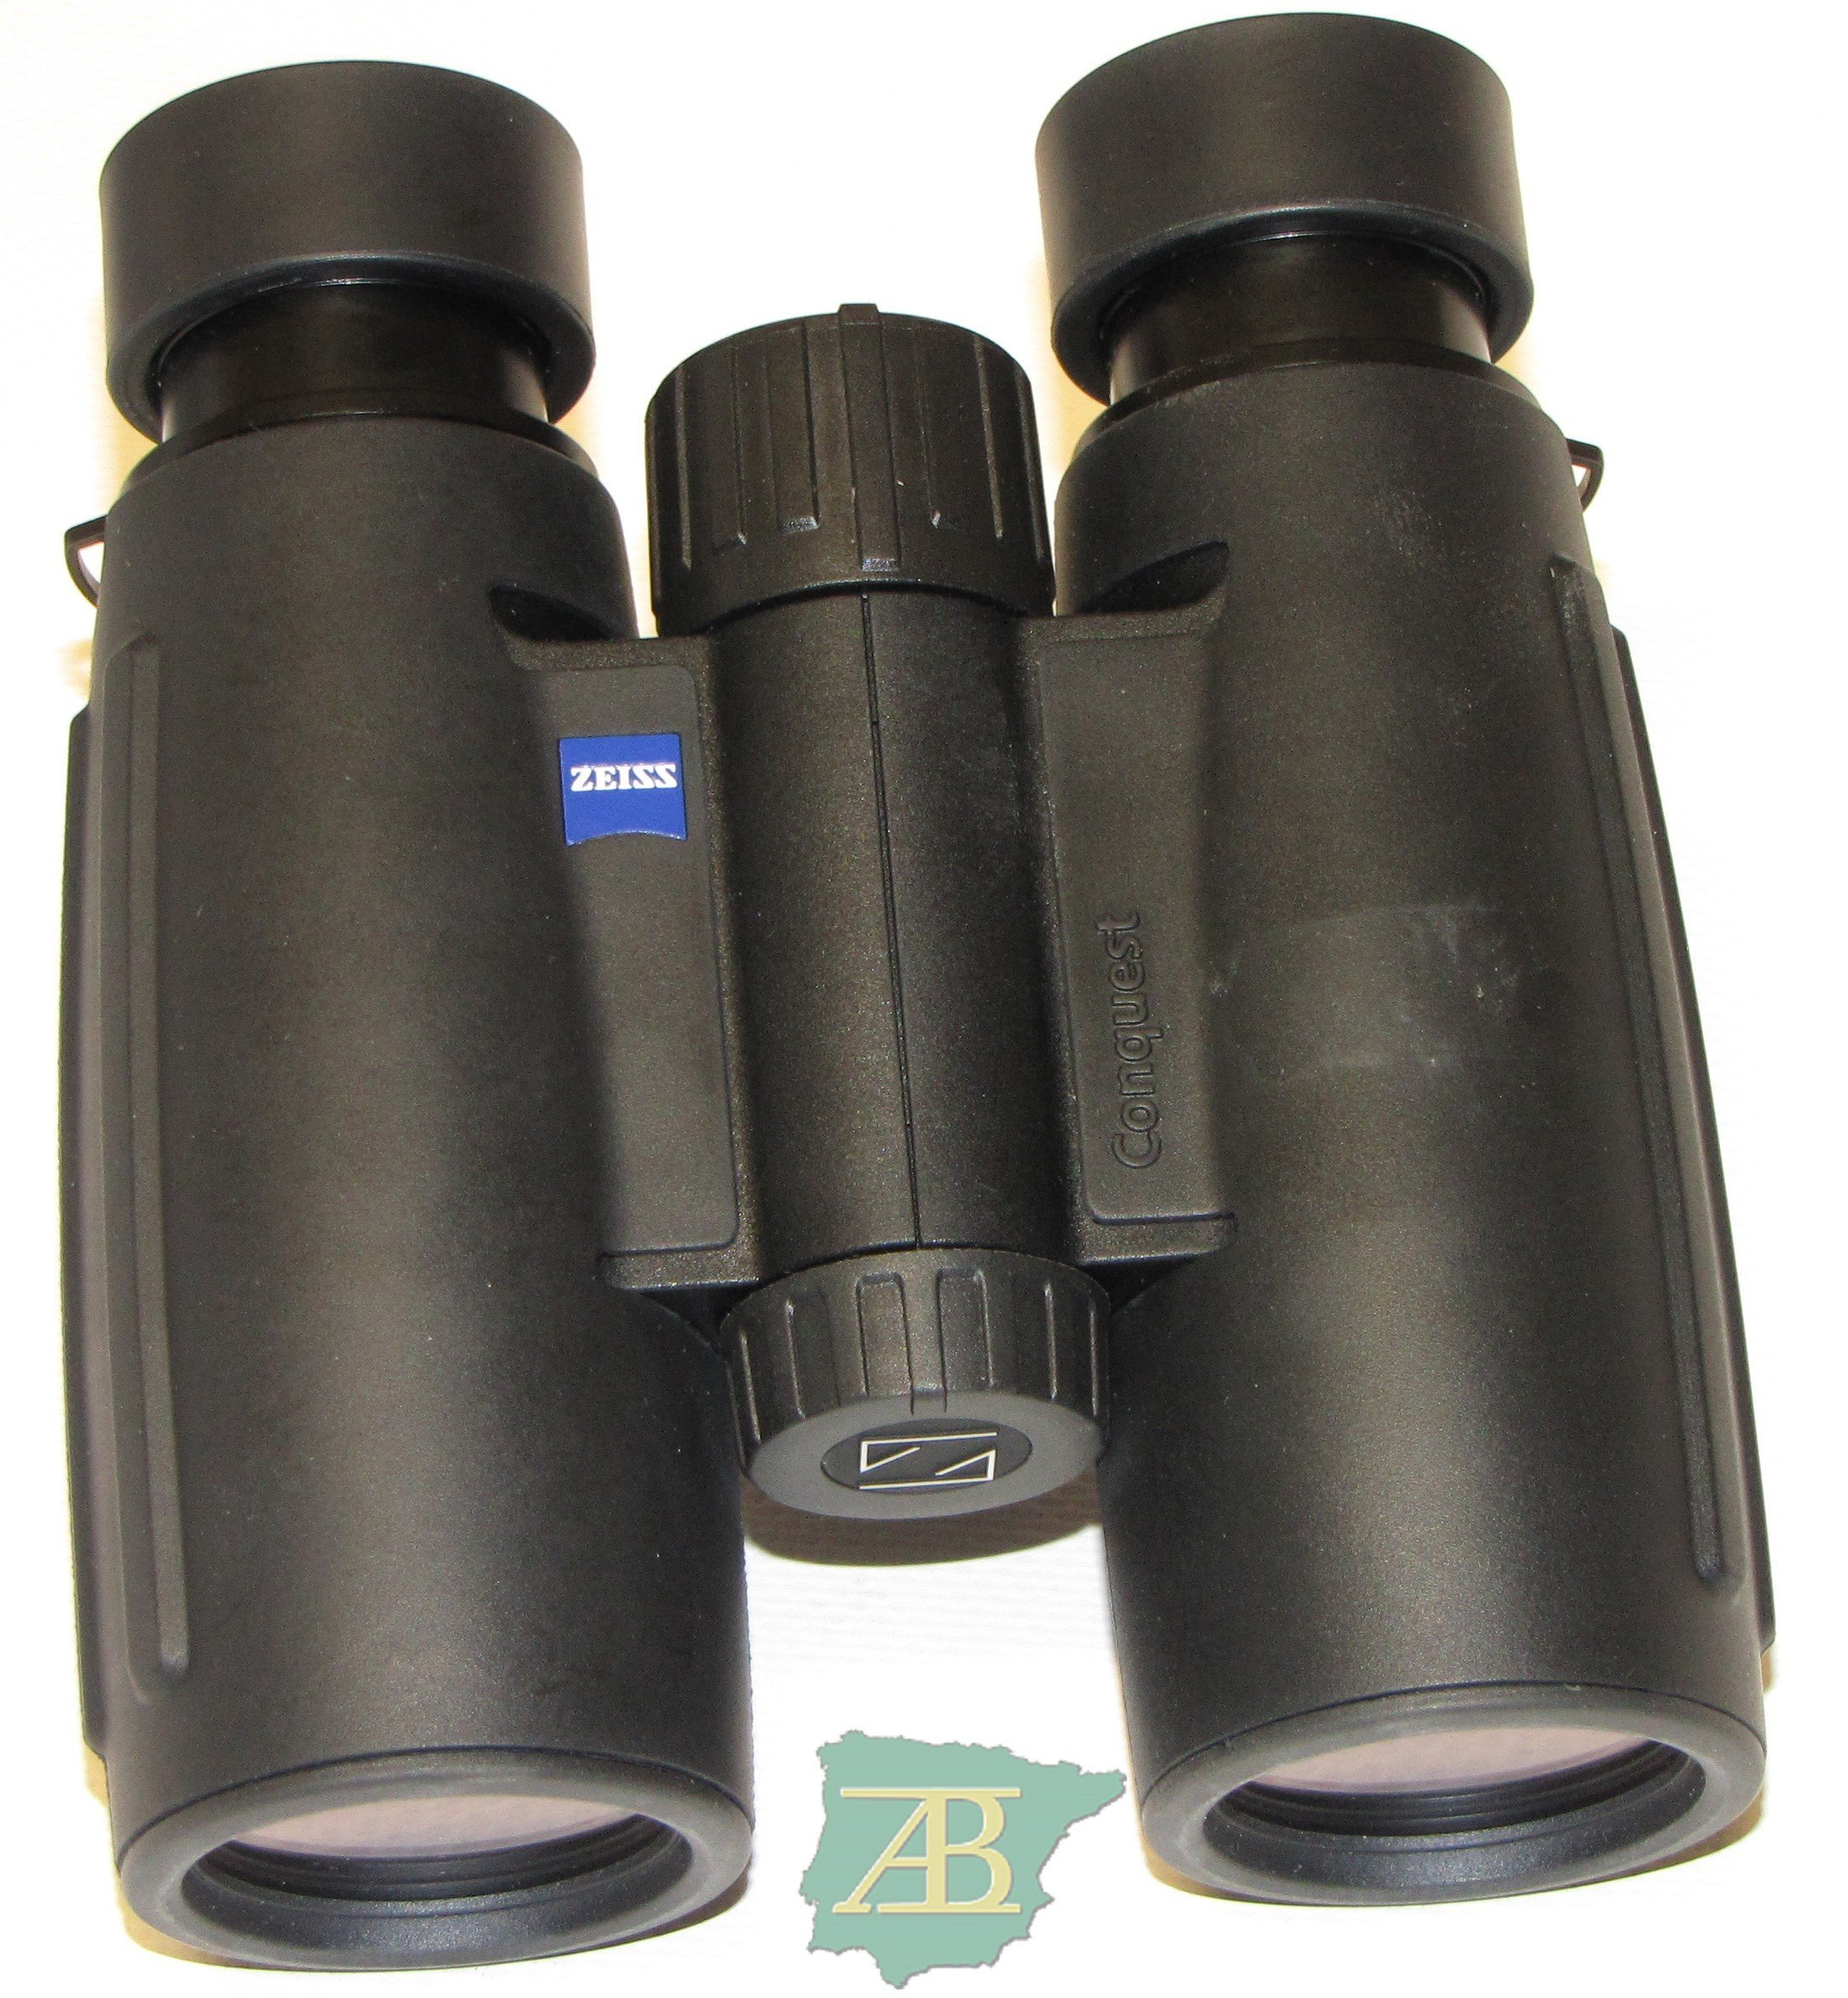 PRISMATICOS ZEISS CONQUEST 8X30 T*